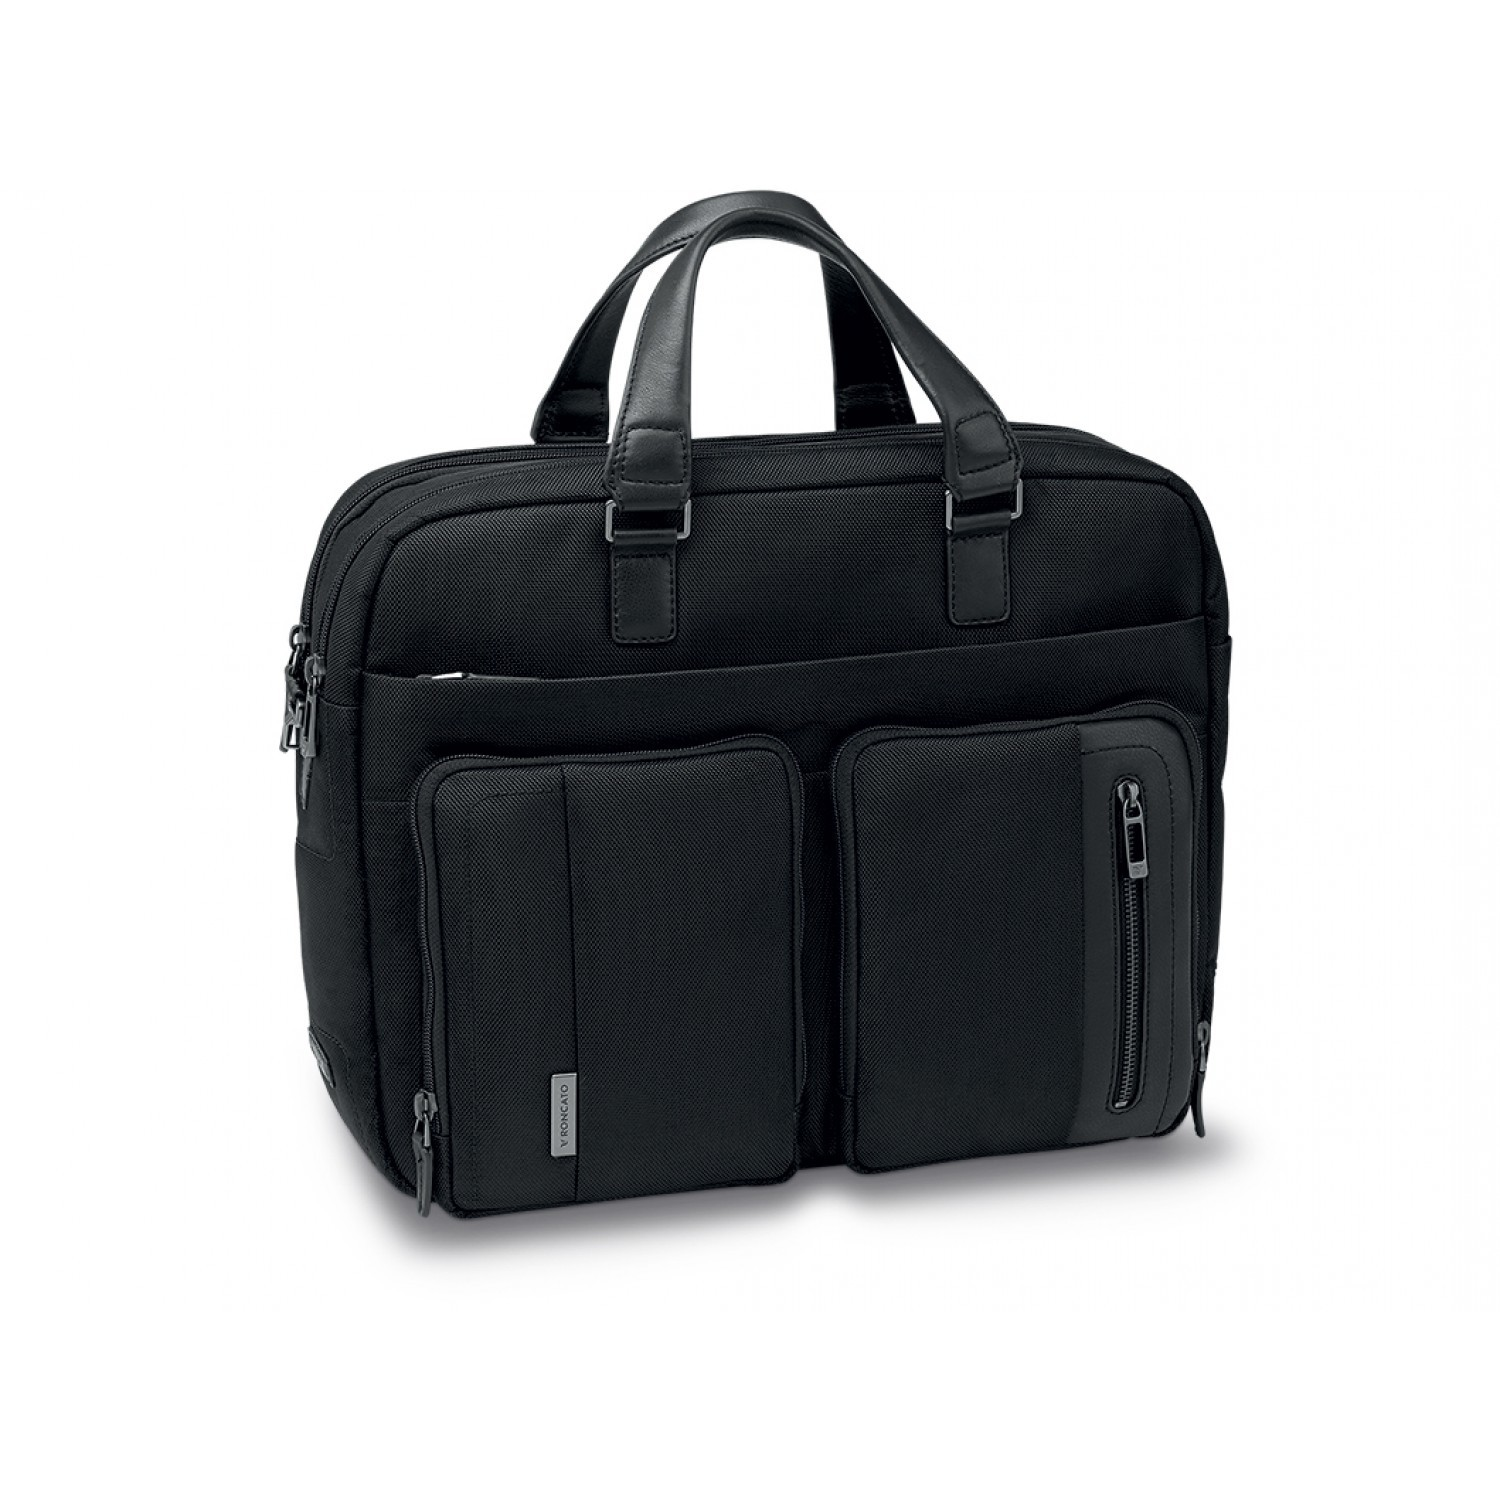 Портфель Roncato Flag 2 HANDLES bag 2 comp. Black для ноутбука 15,6